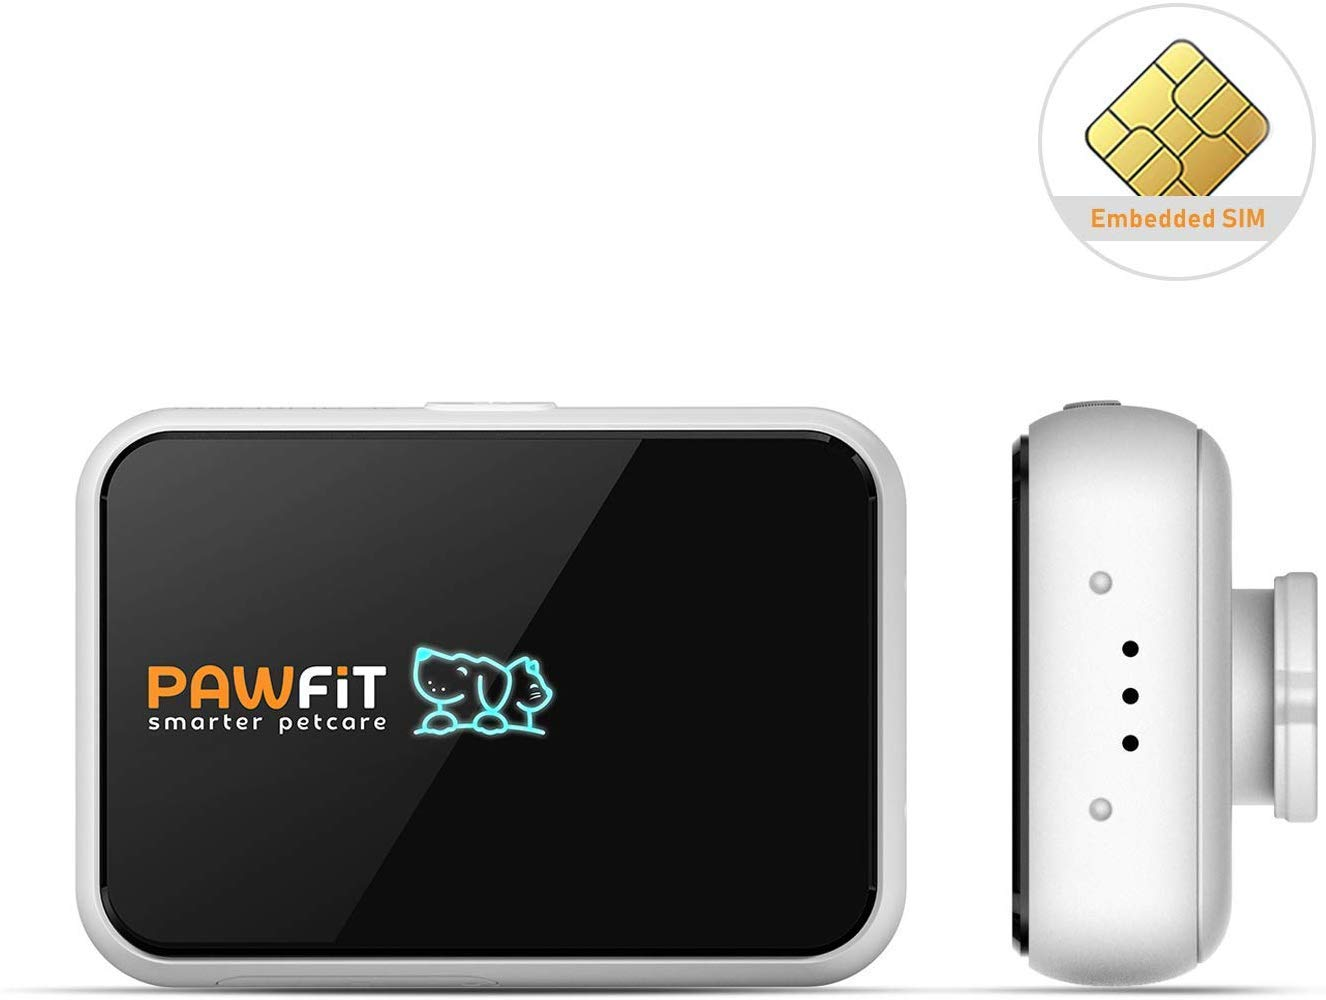 Pawfit Dog GPS Tracker & Activity Monitor Included SIM Card